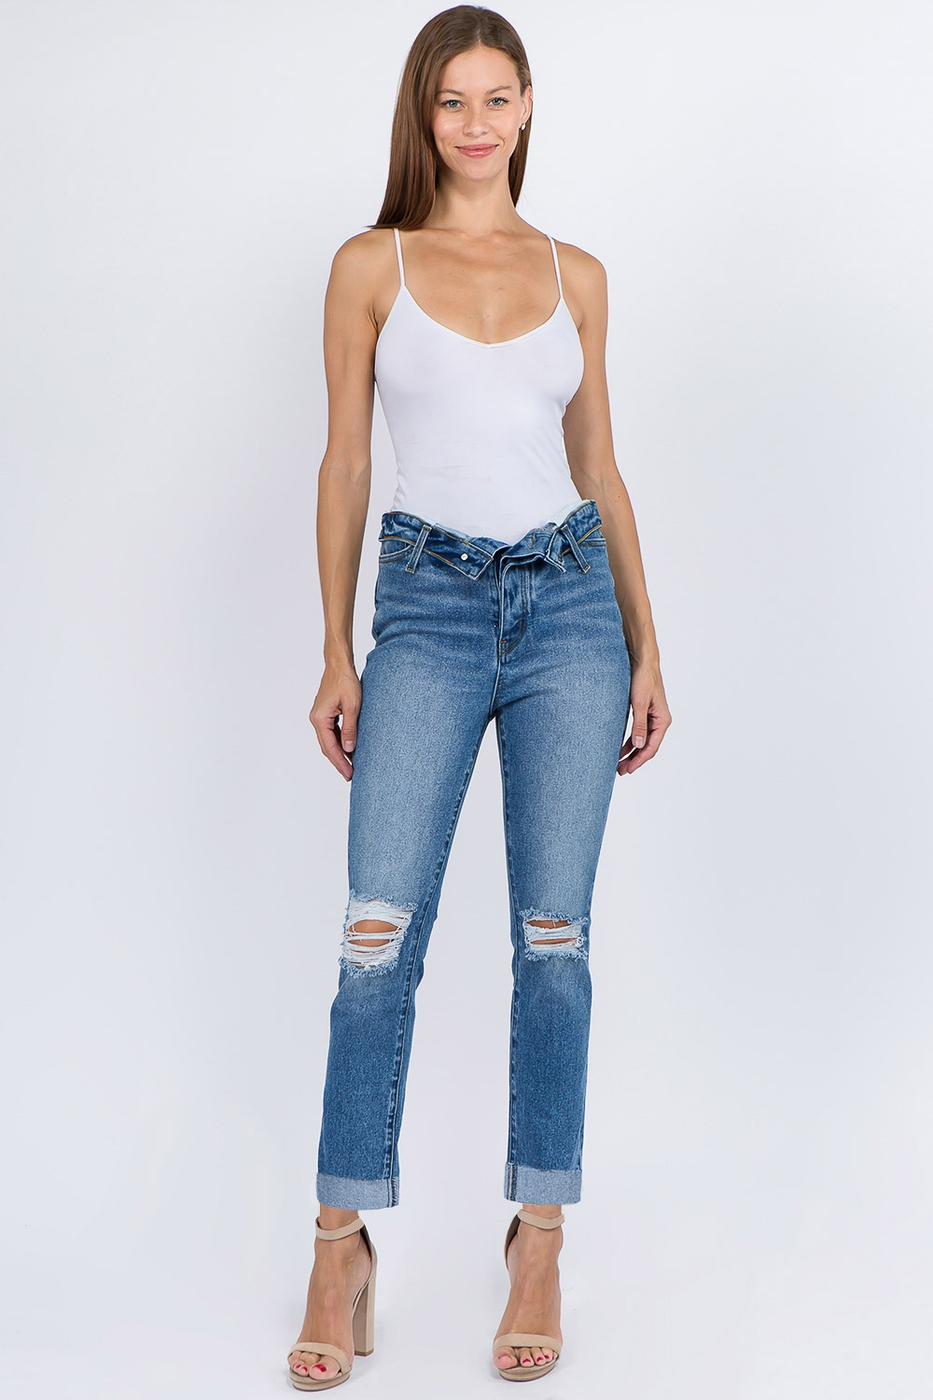 FLIPPED WAIST HIGH WAIST DENIM JEANS - orangeshine.com